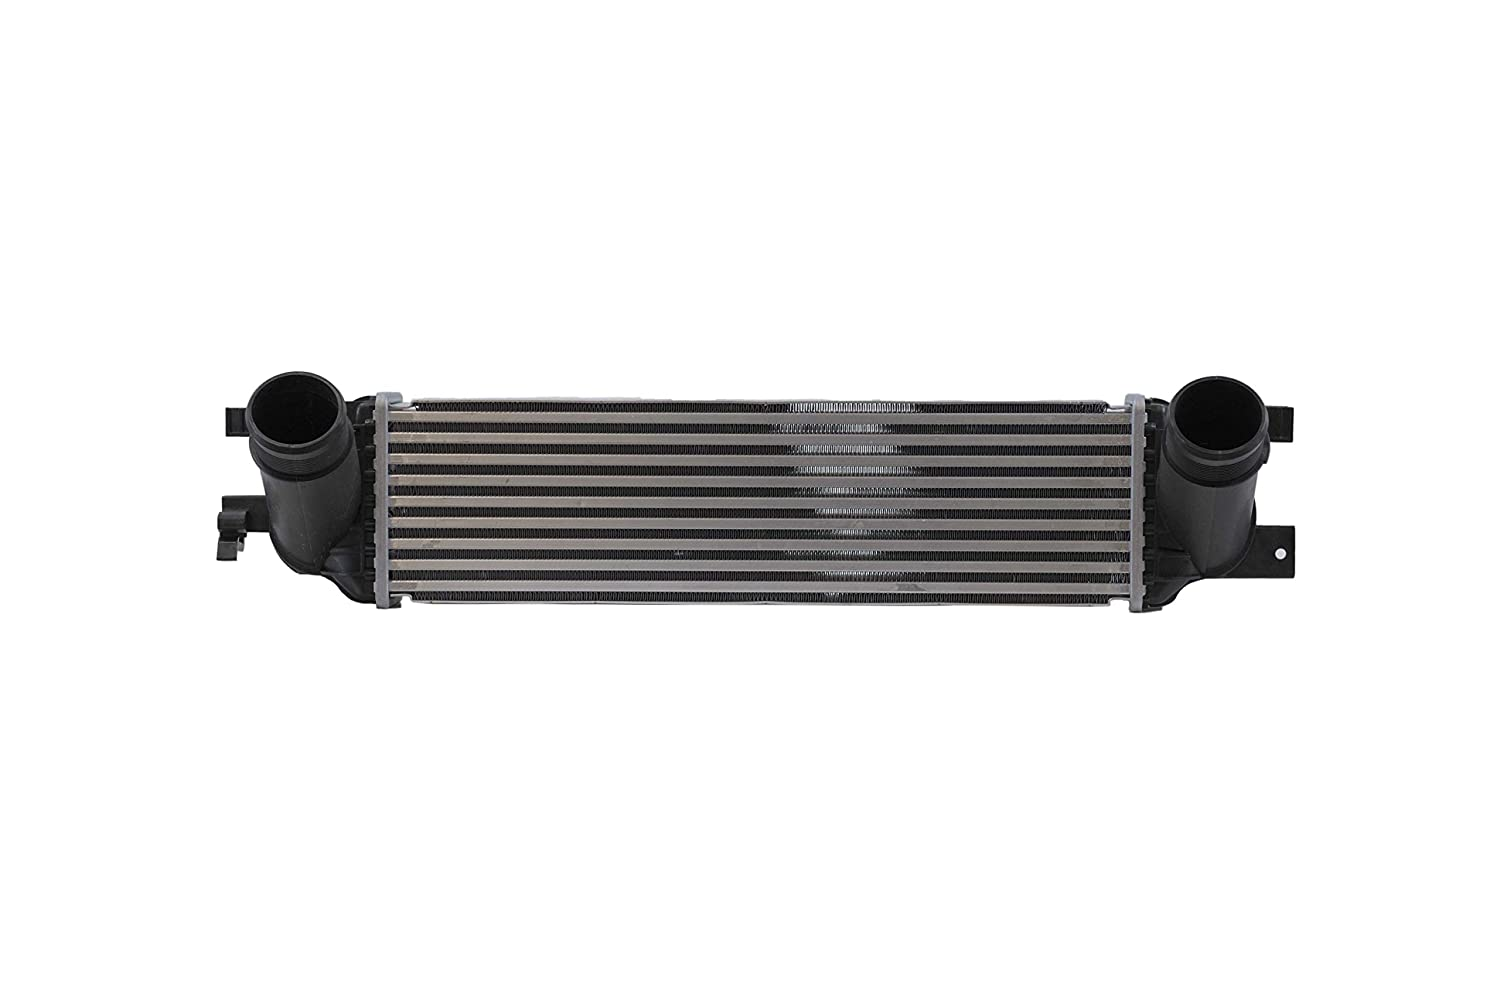 Cooling Direct Fit//For FR3Z6K775A 15-16 Ford Mustang Convertible//Coupe 2.3L Turbocharger Intercooler Intercooler Kit